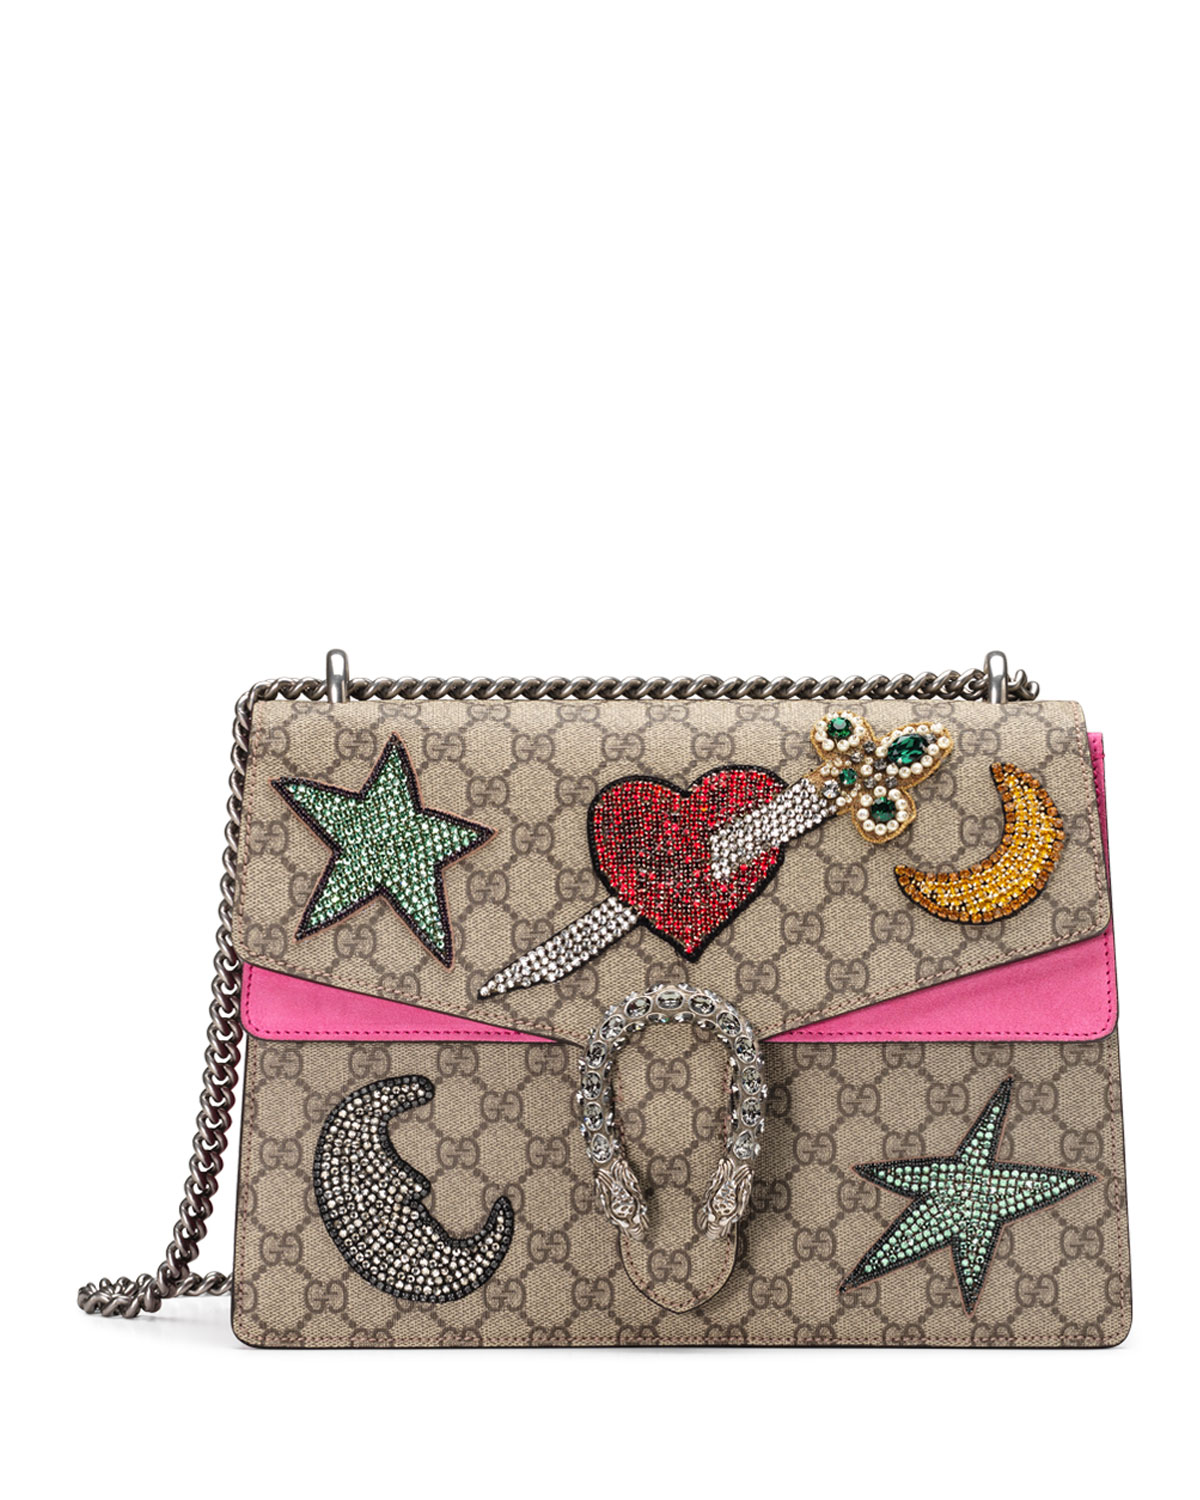 2b501923b7d2 Gucci Dionysus Embroidered Shoulder Bag, Multi/Pink | Neiman Marcus